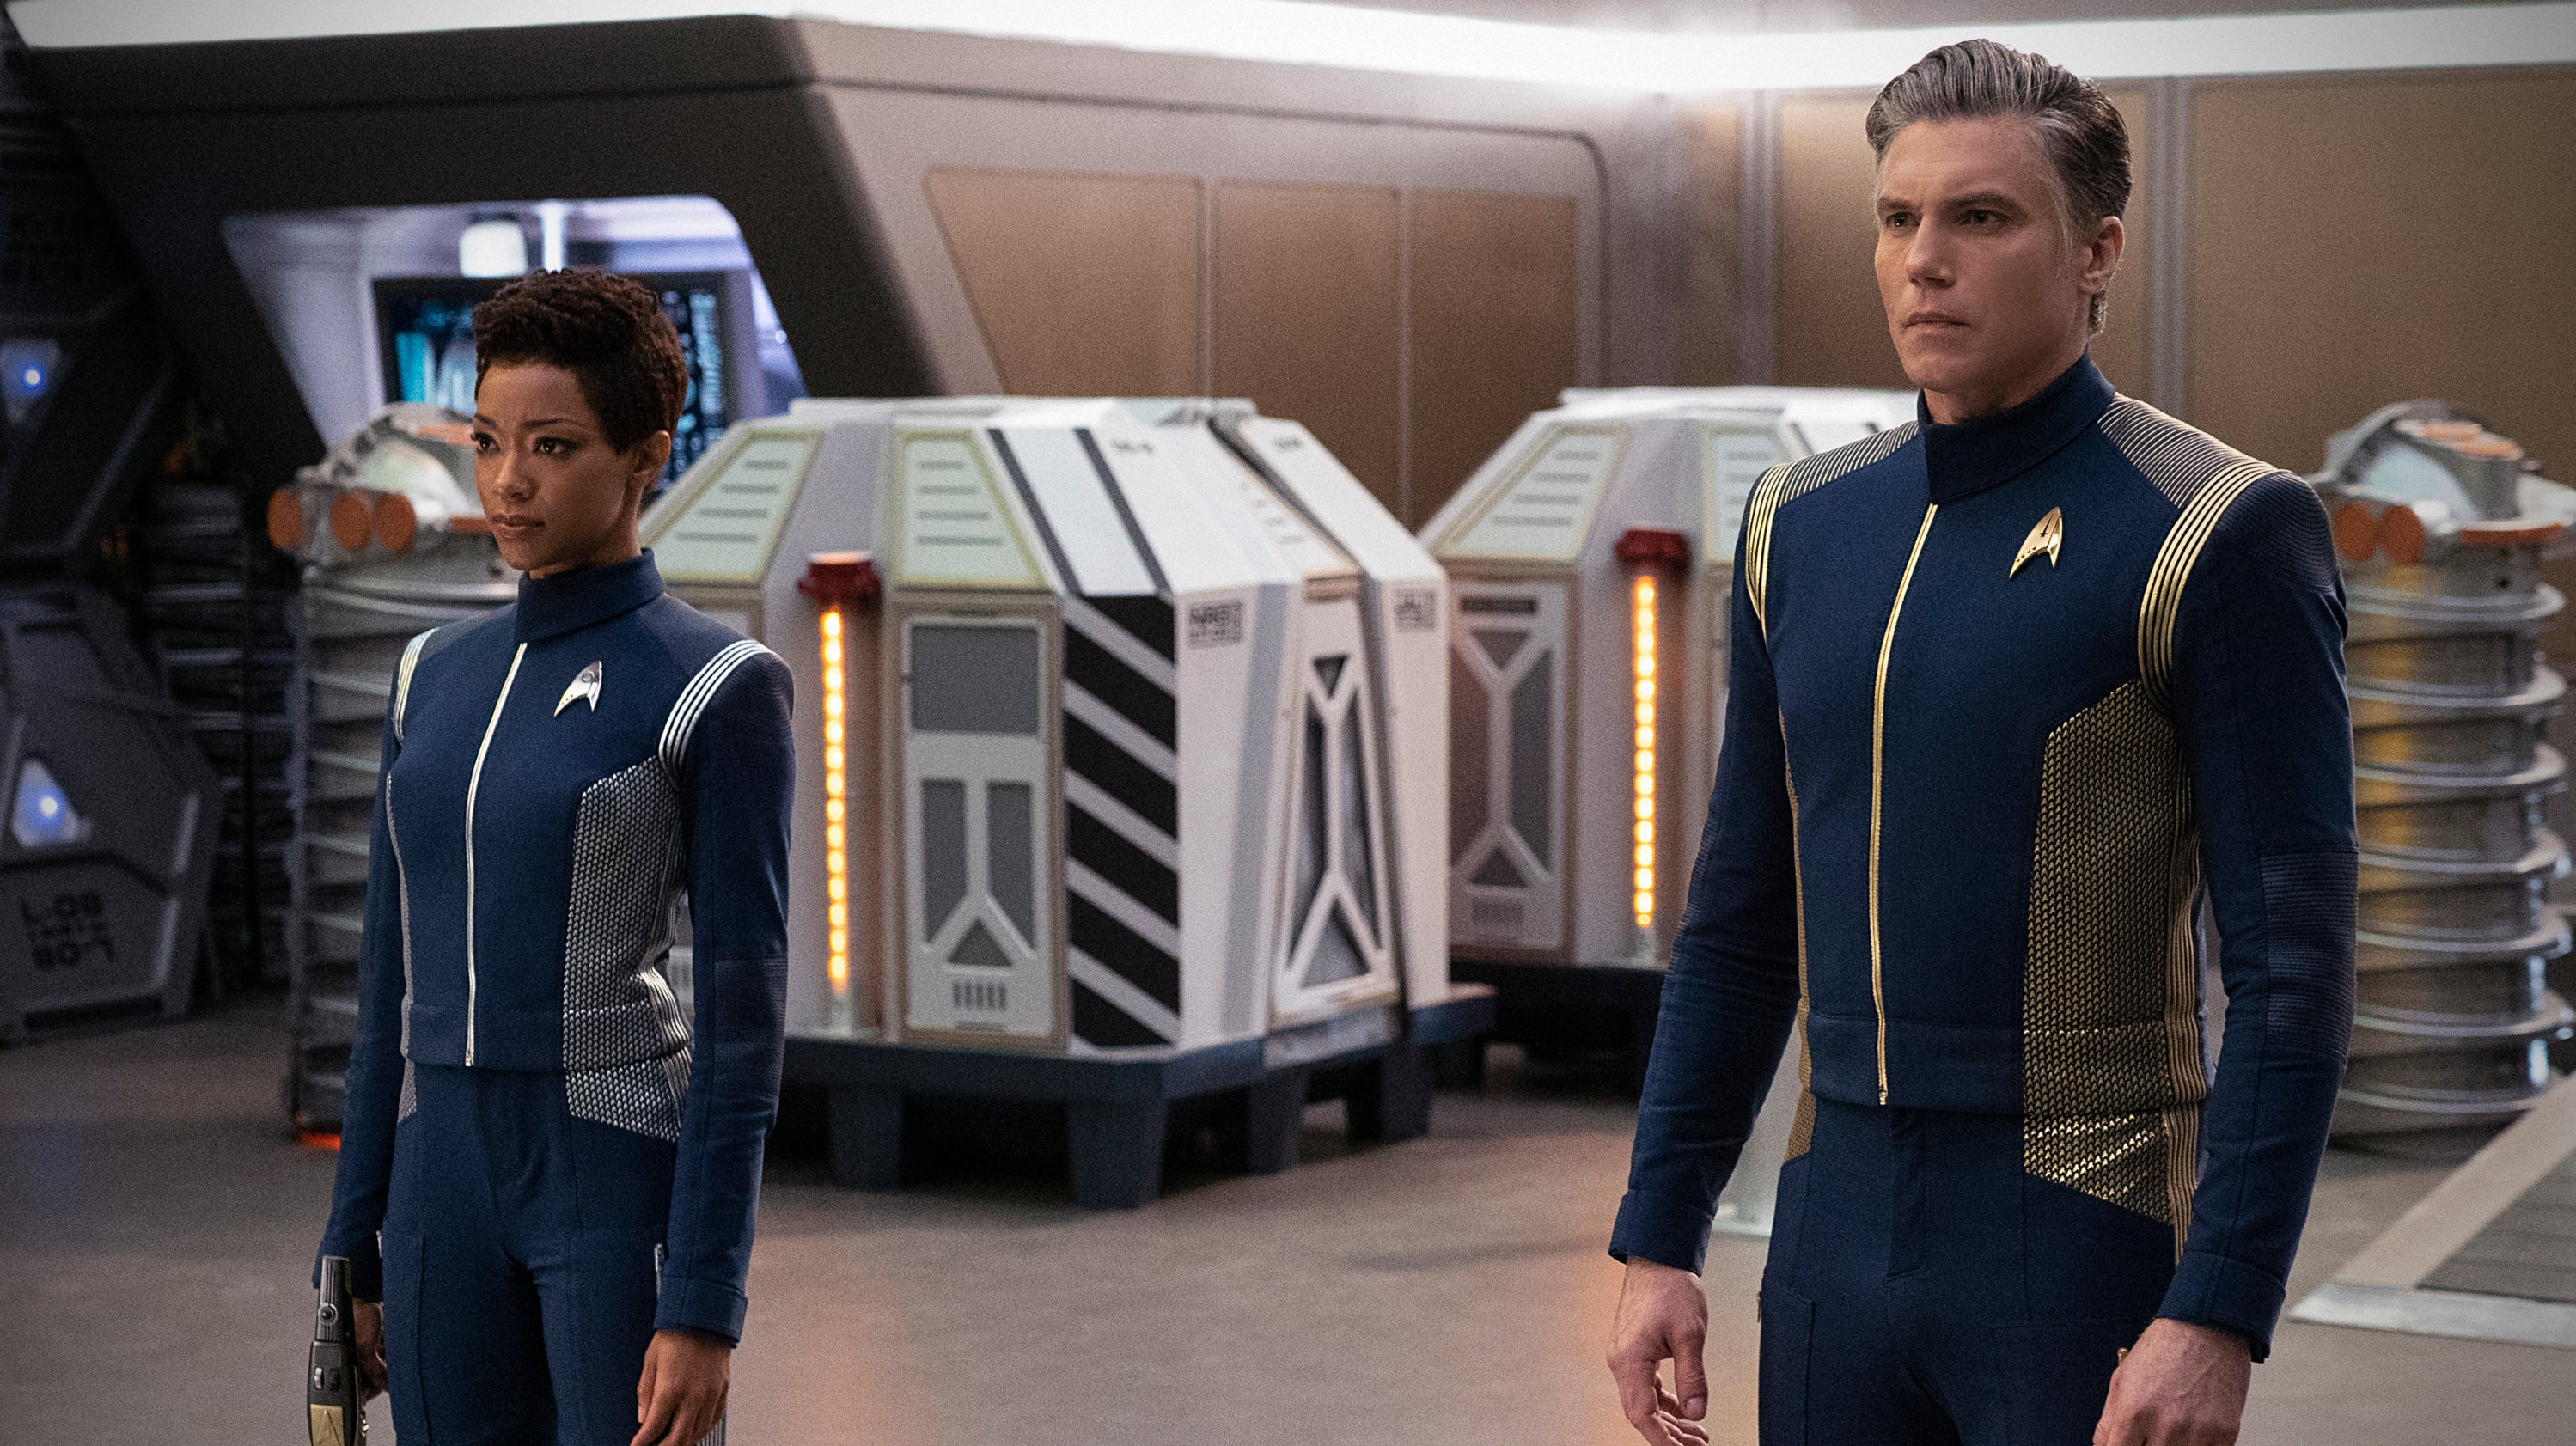 anthony-rapp cbs-all-access io9 lgbtq star-trek star-trek-discovery wilson-cruz